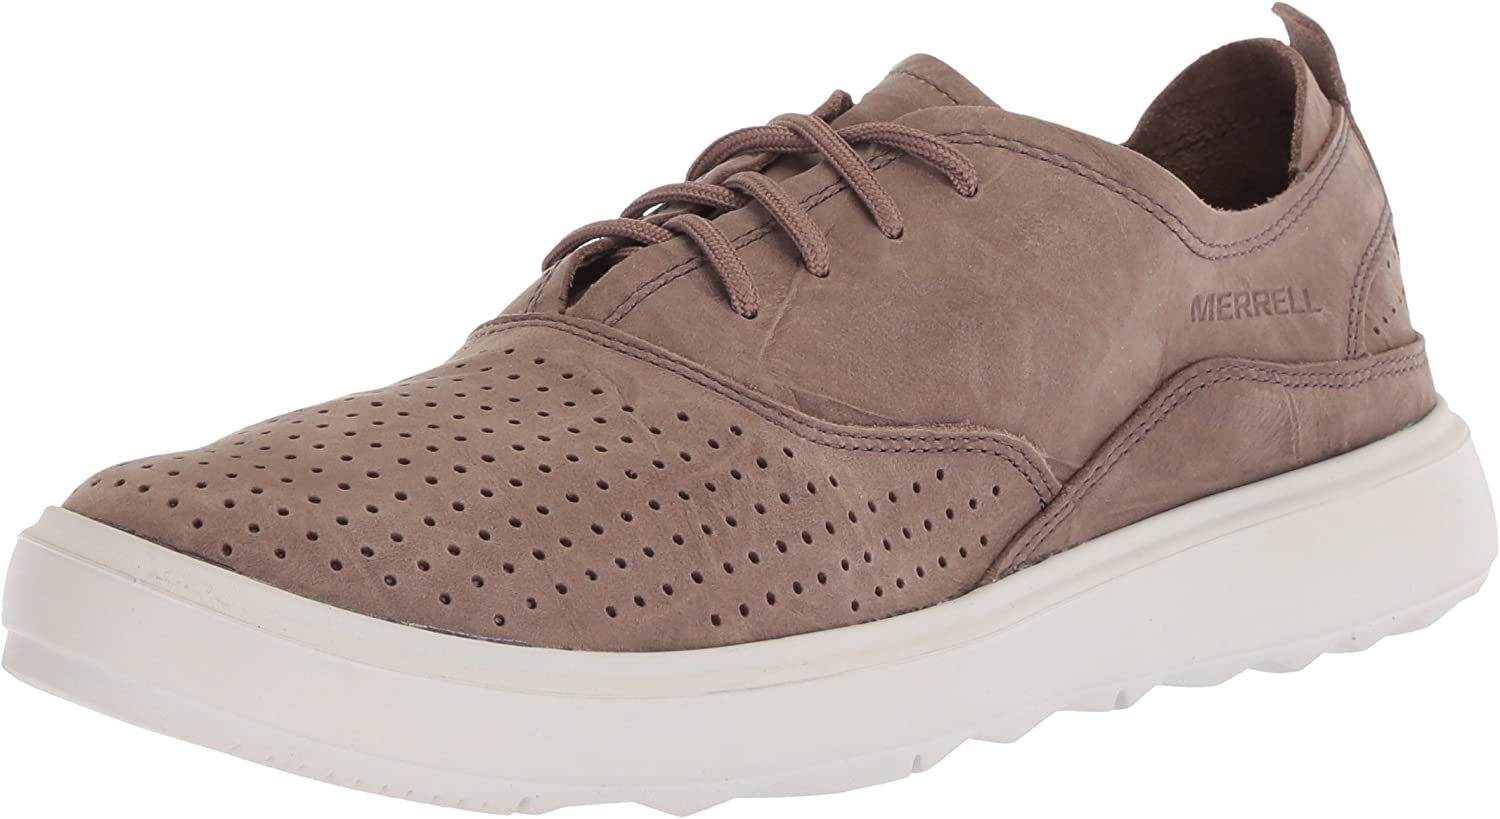 Merrell Women's Around Town City Lace Air shoes